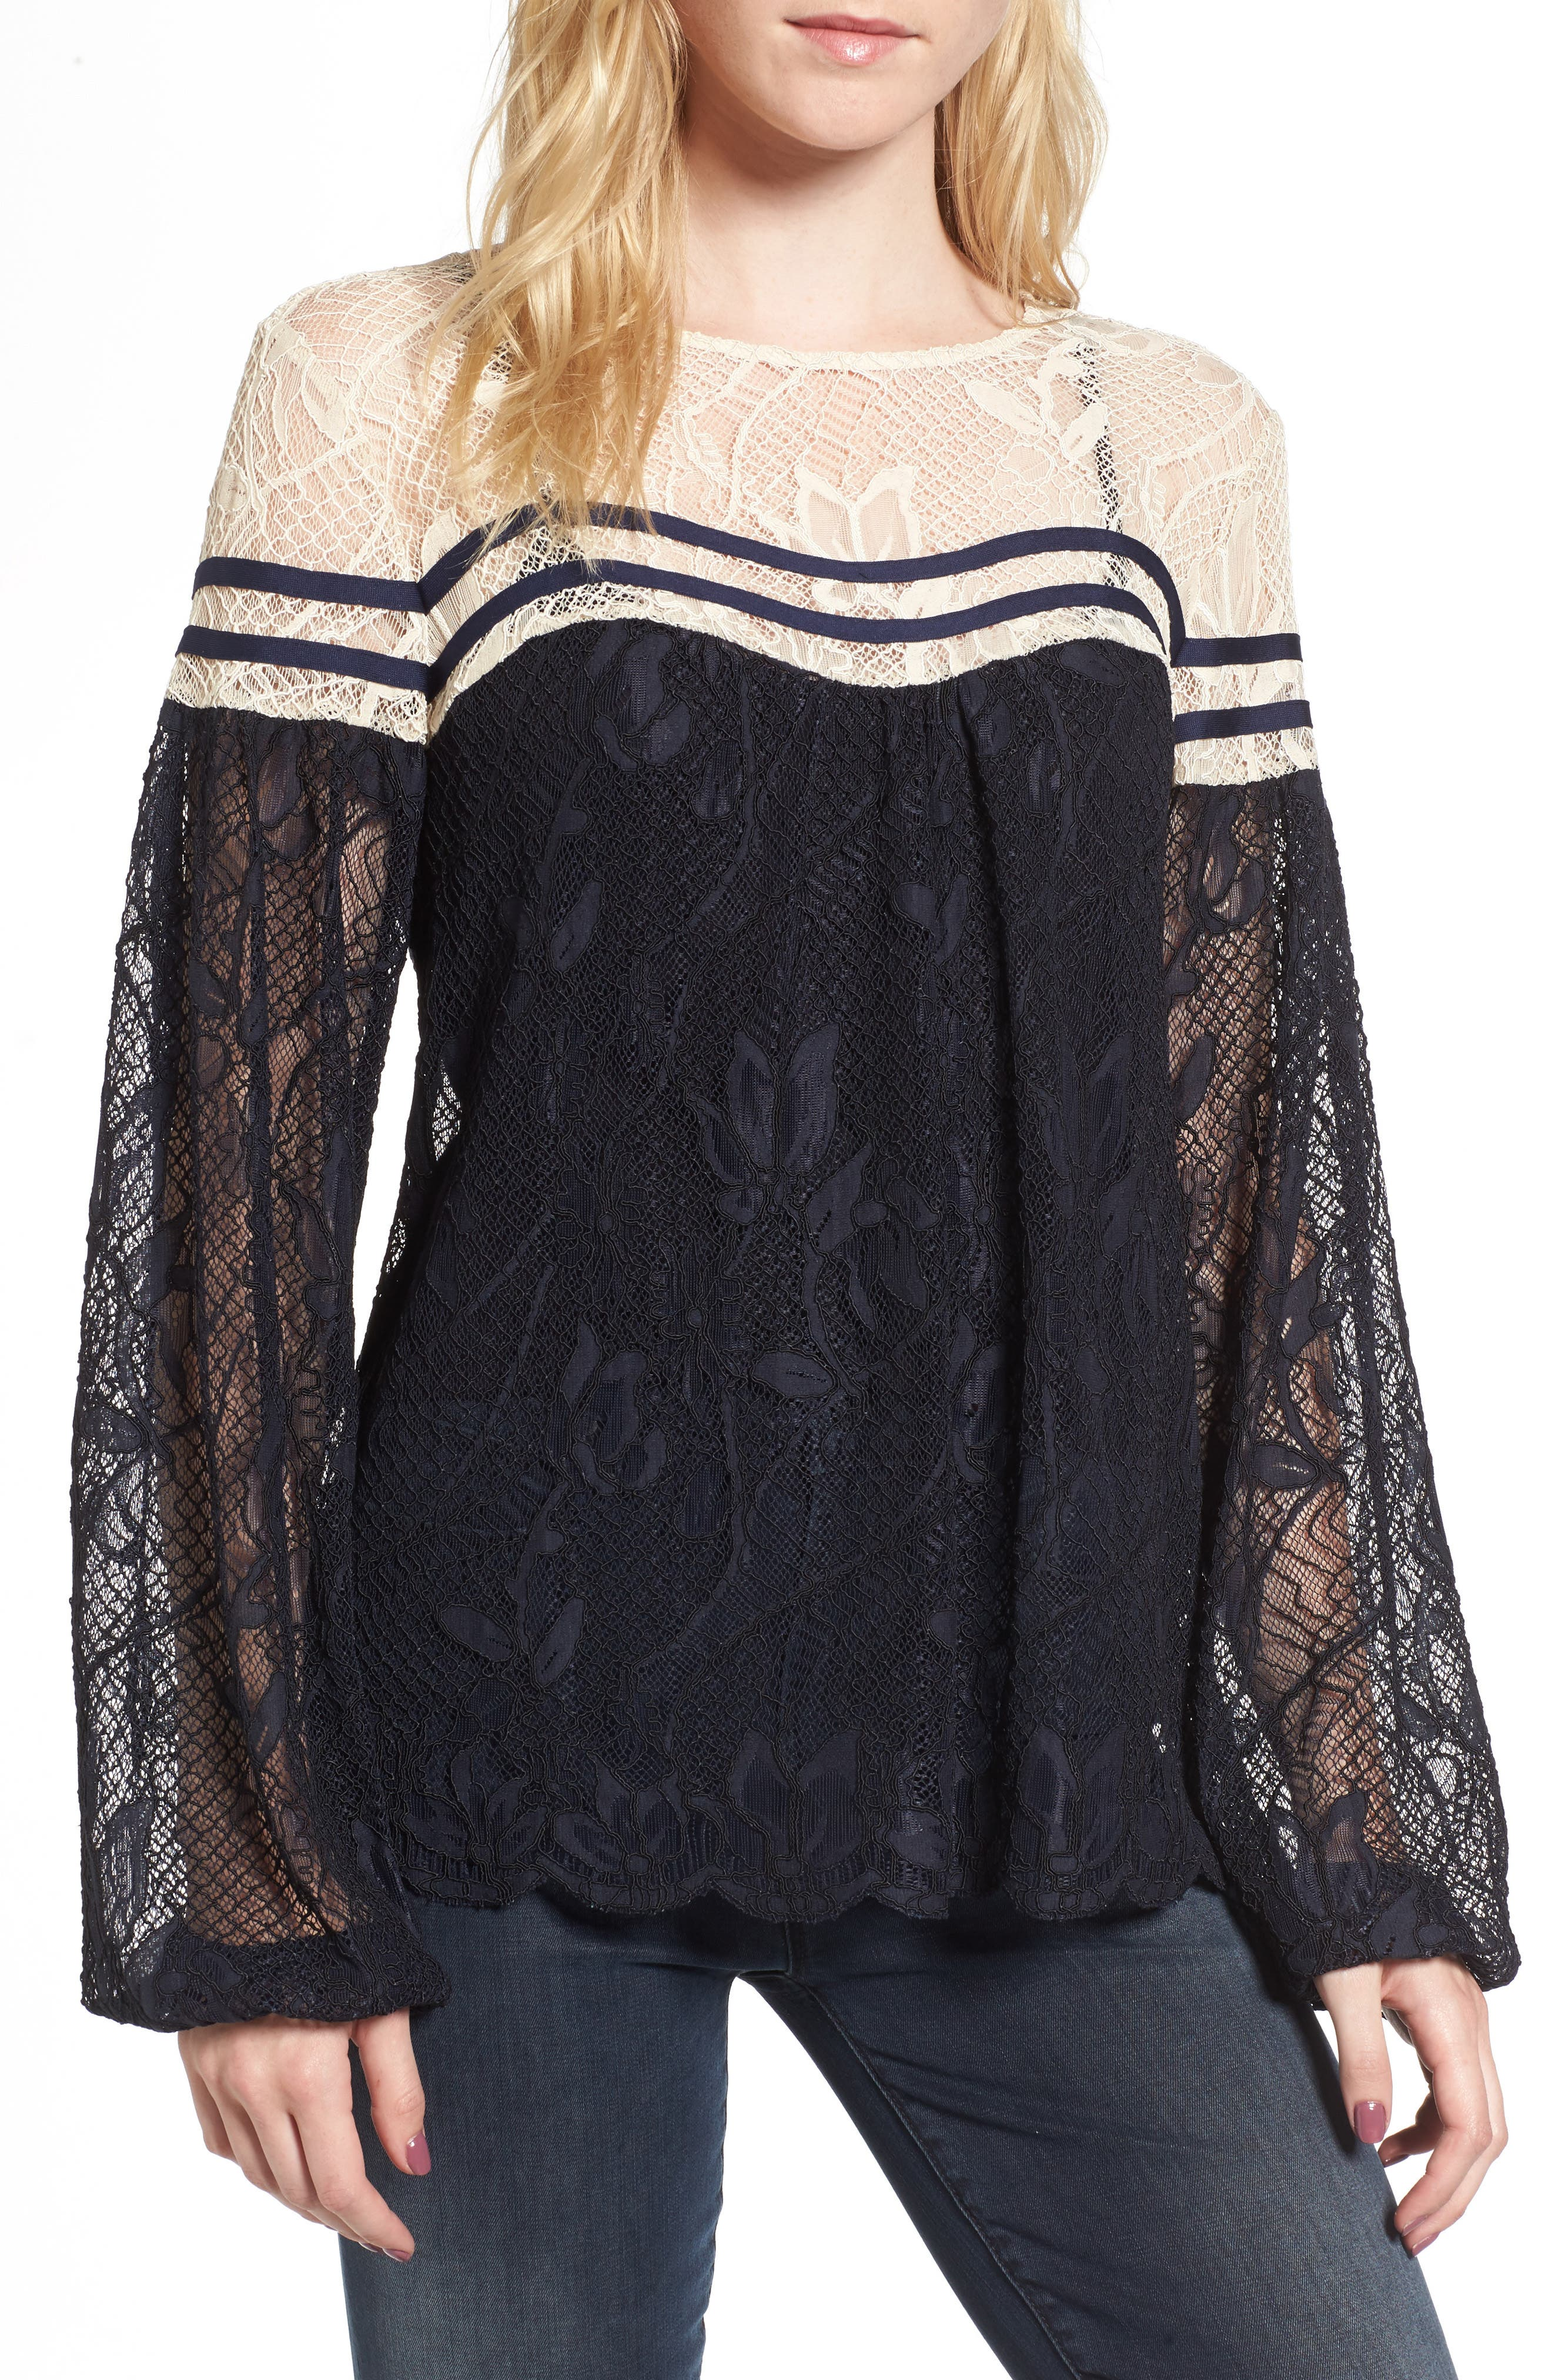 Main Image - Chelsea28 Lace Top